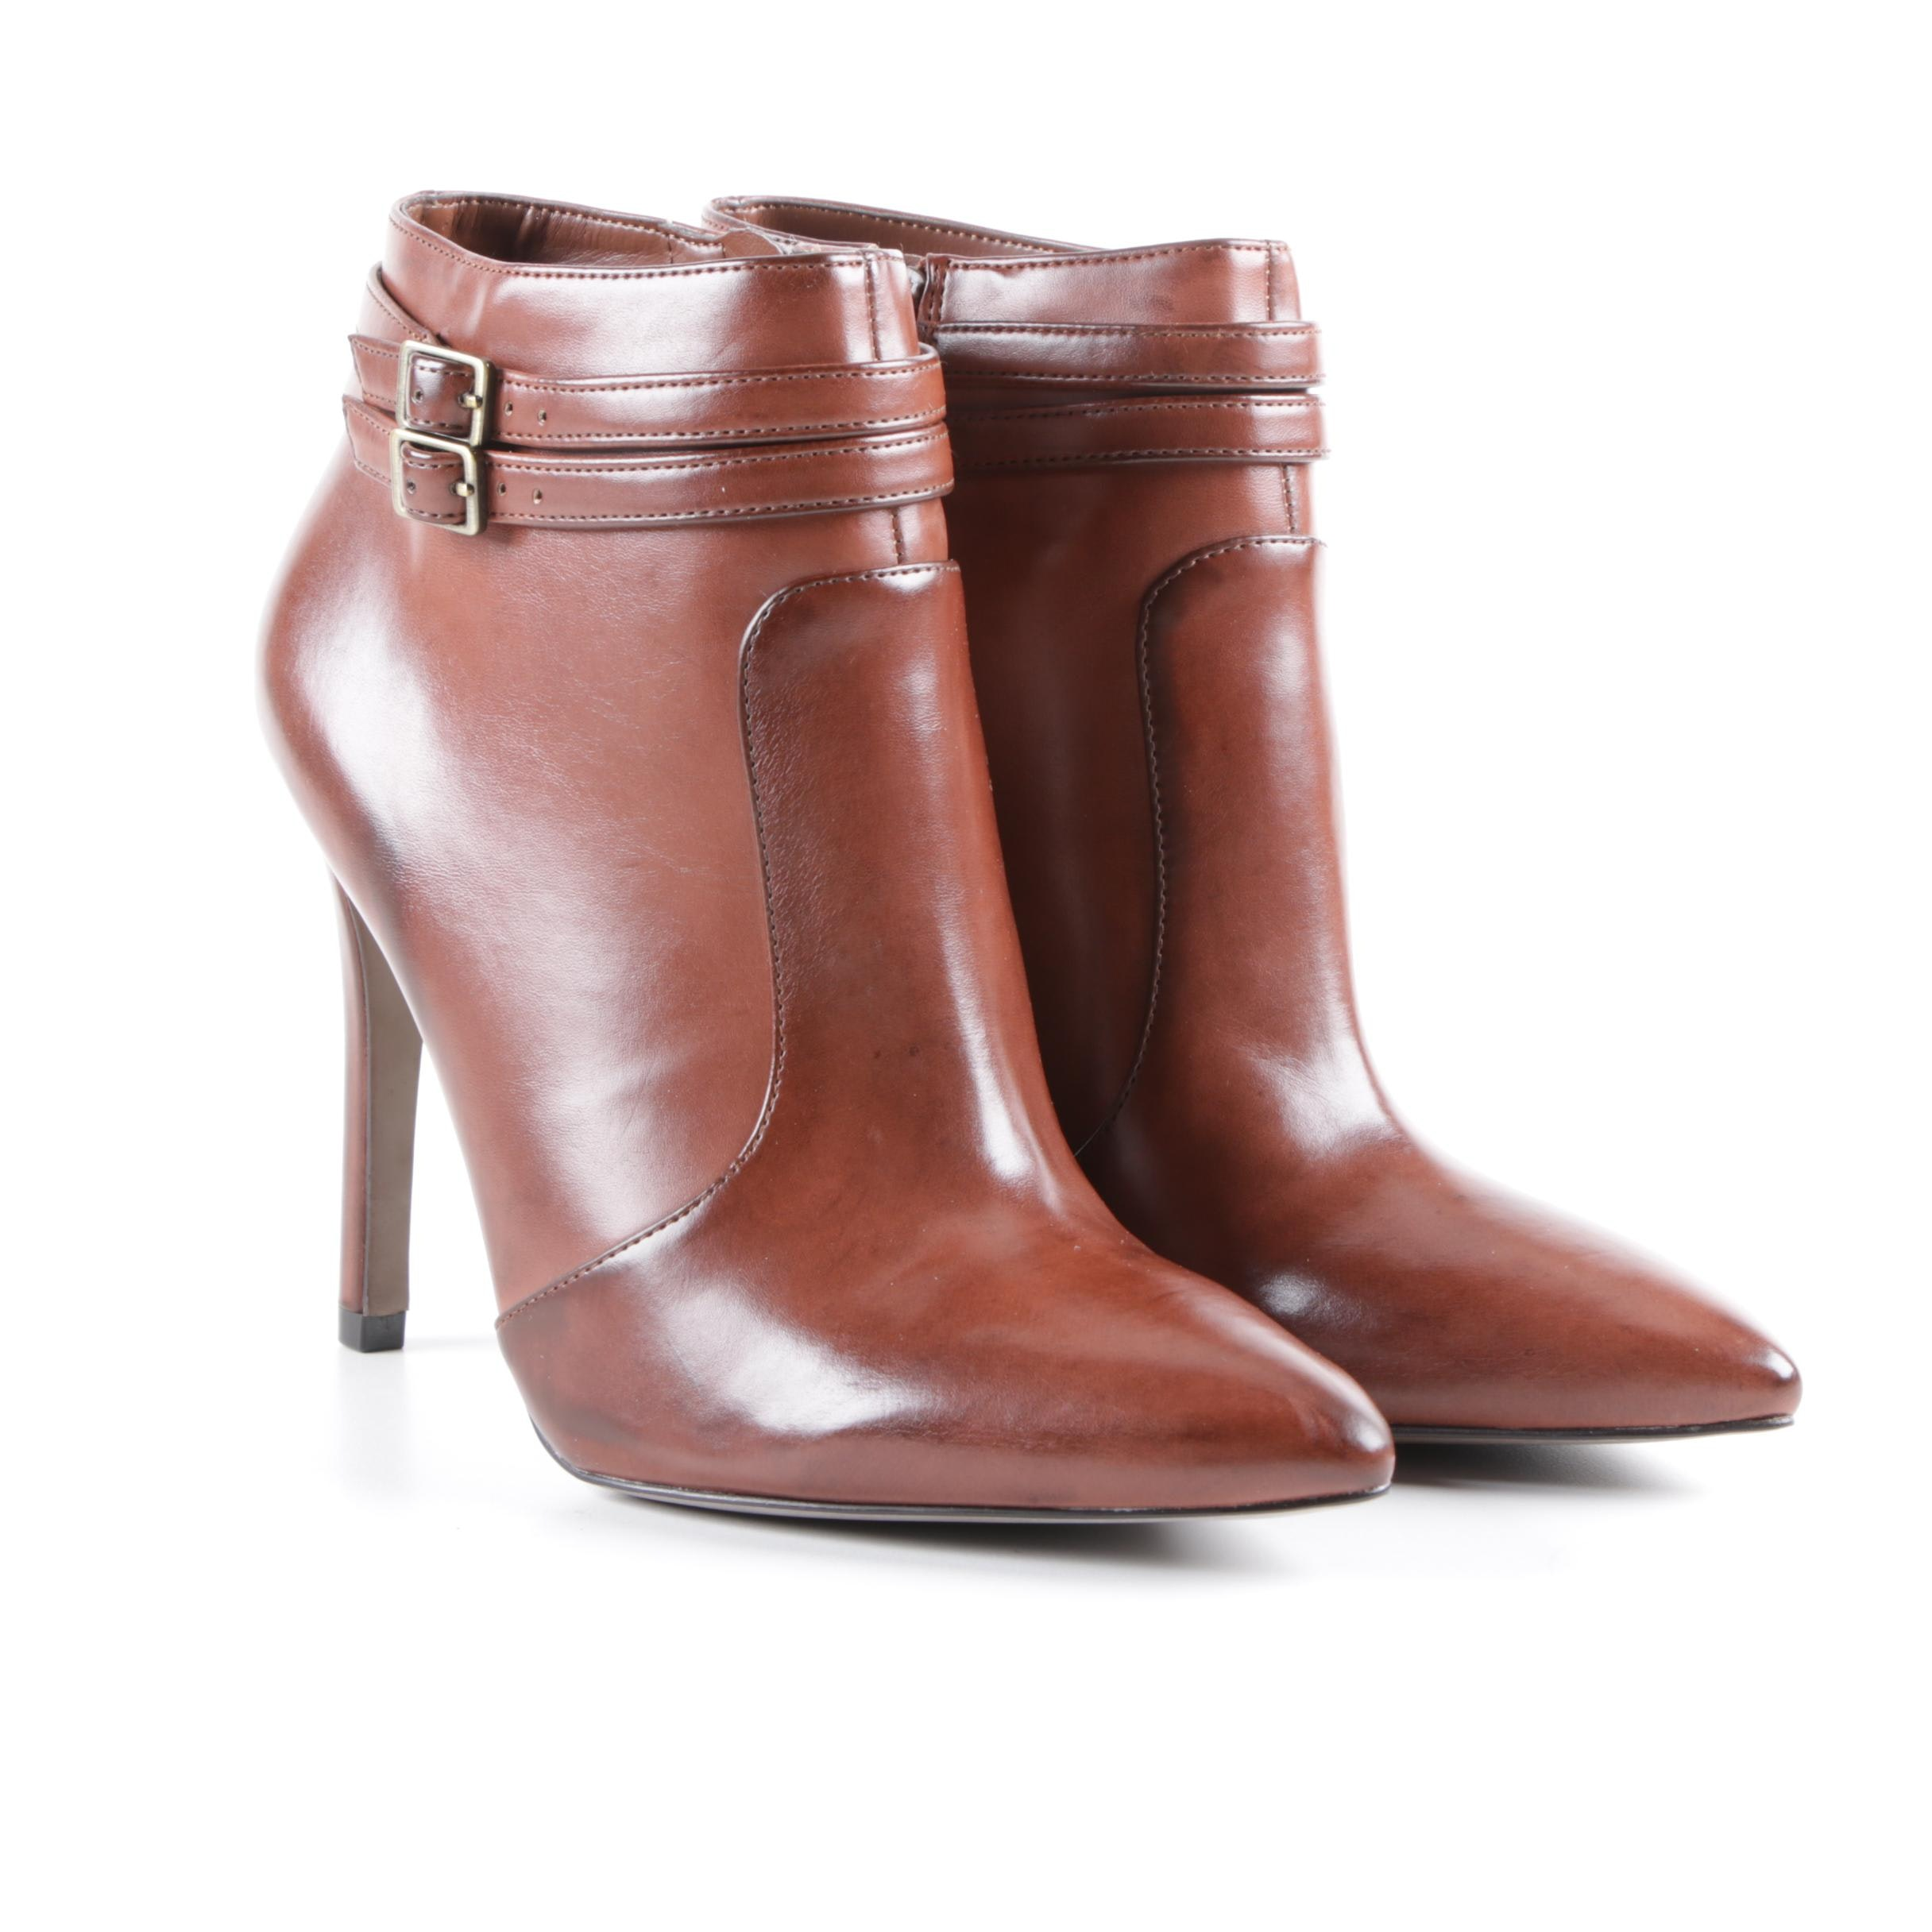 Ann Taylor Loft Marin Brown Faux Leather Ankle Booties